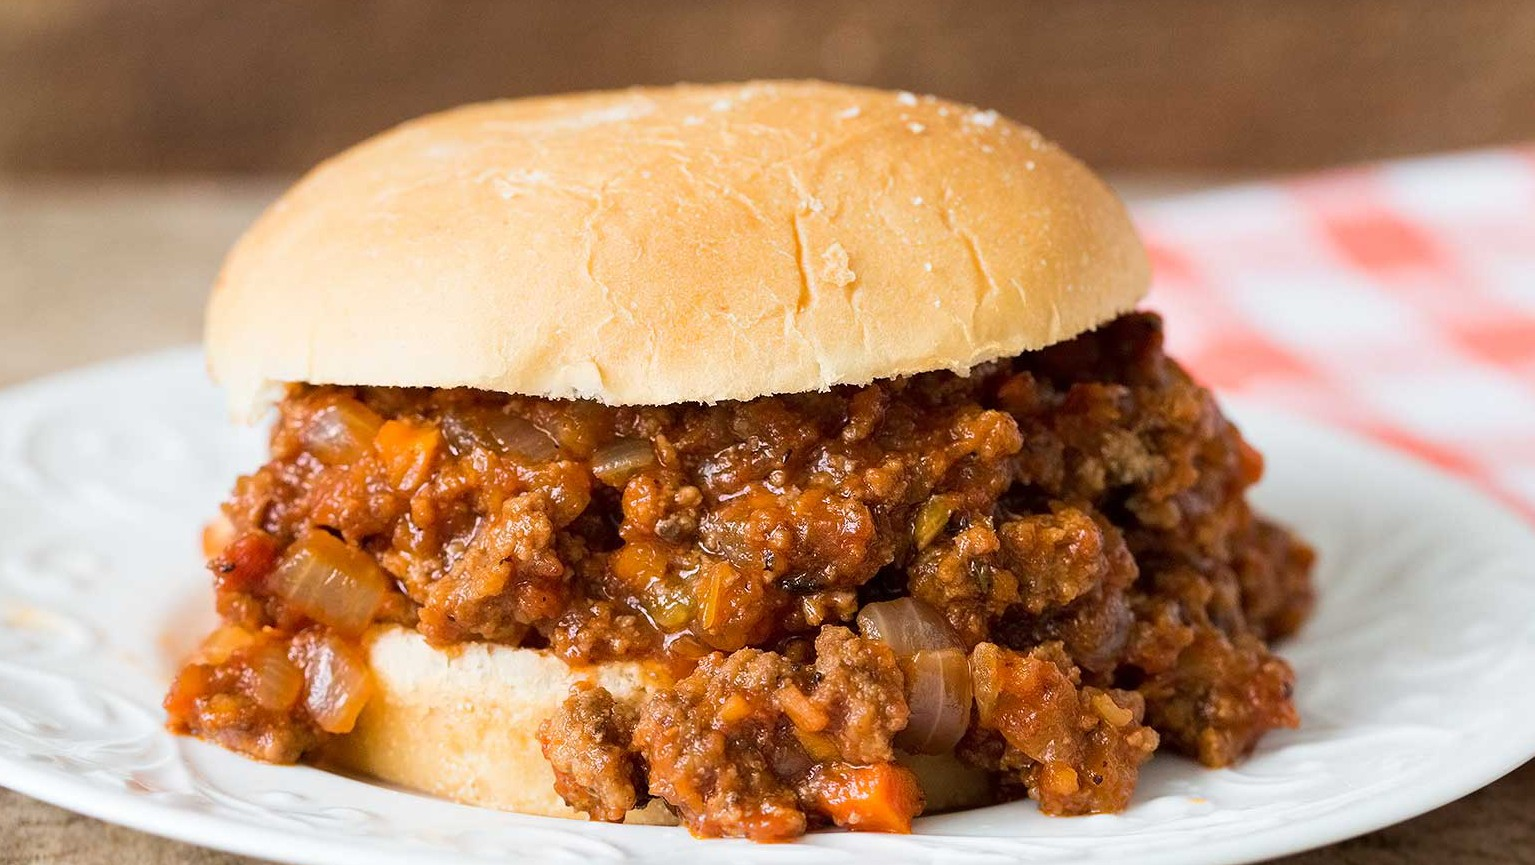 TURKEY SLOPPY JOES!!